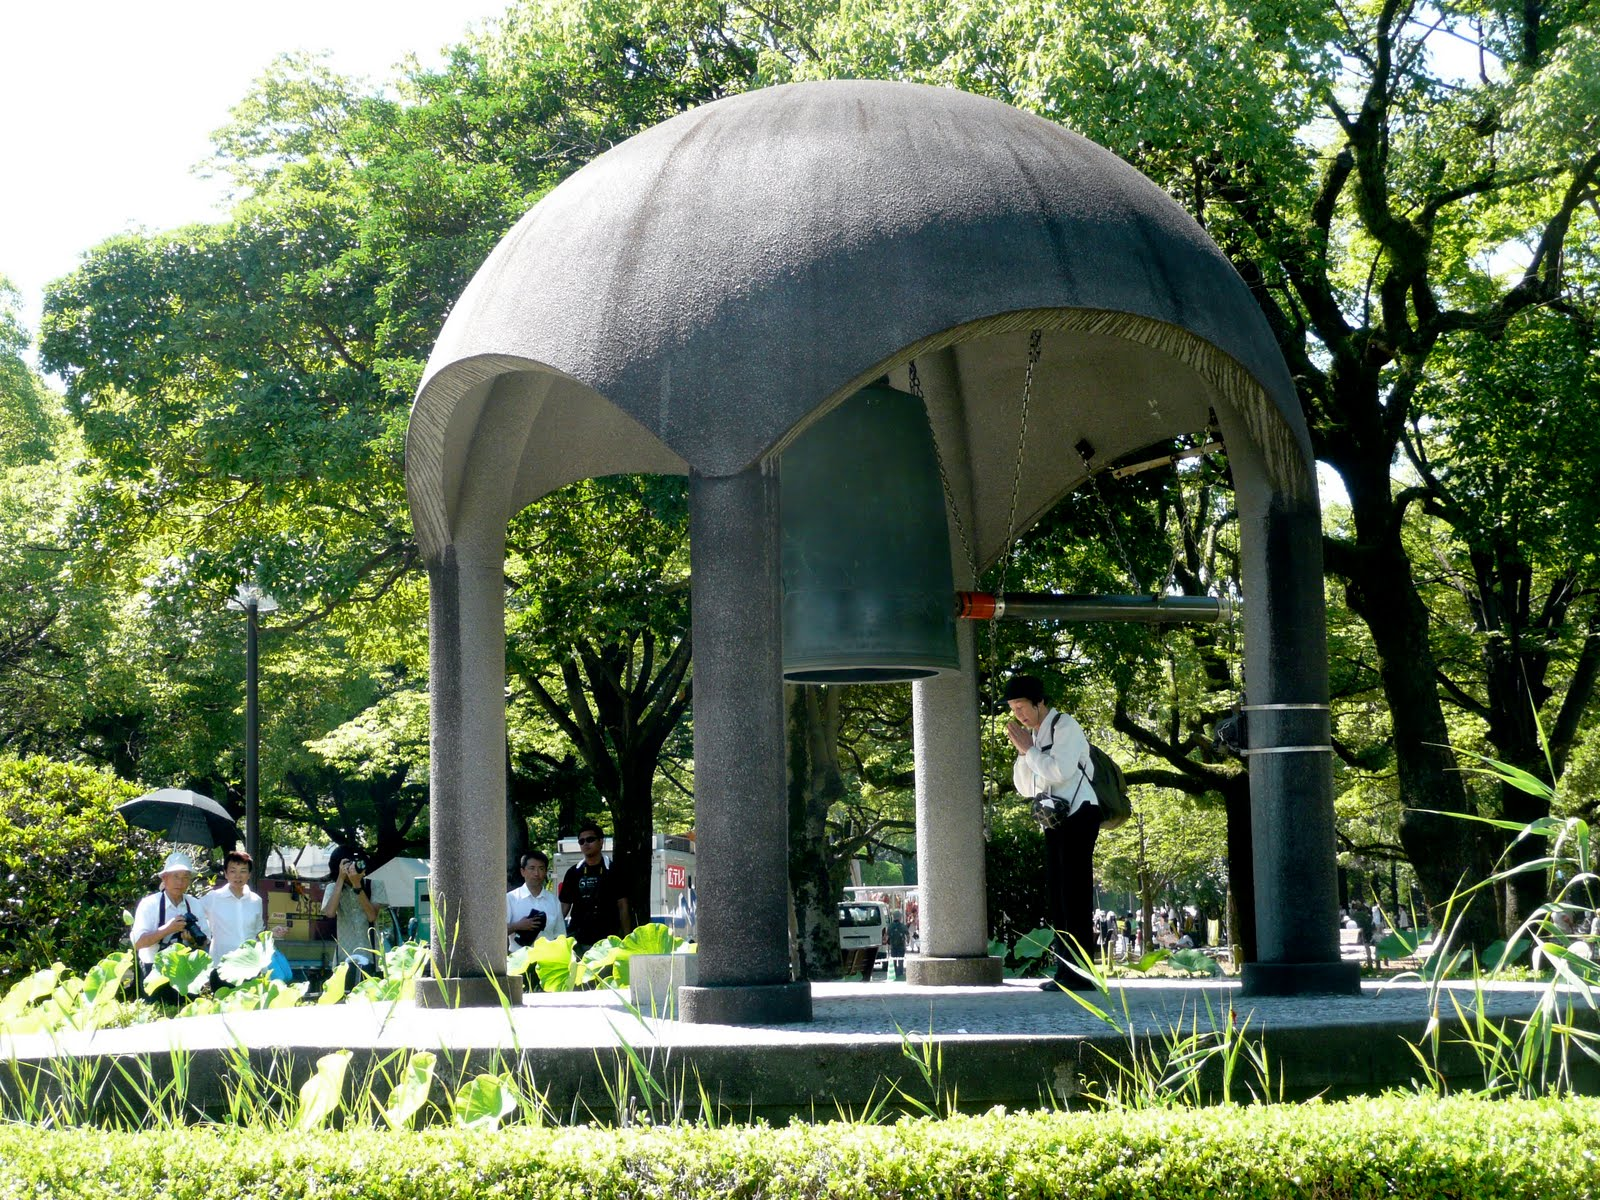 The Japan Travel Digest: Hiroshima - The City for Peace